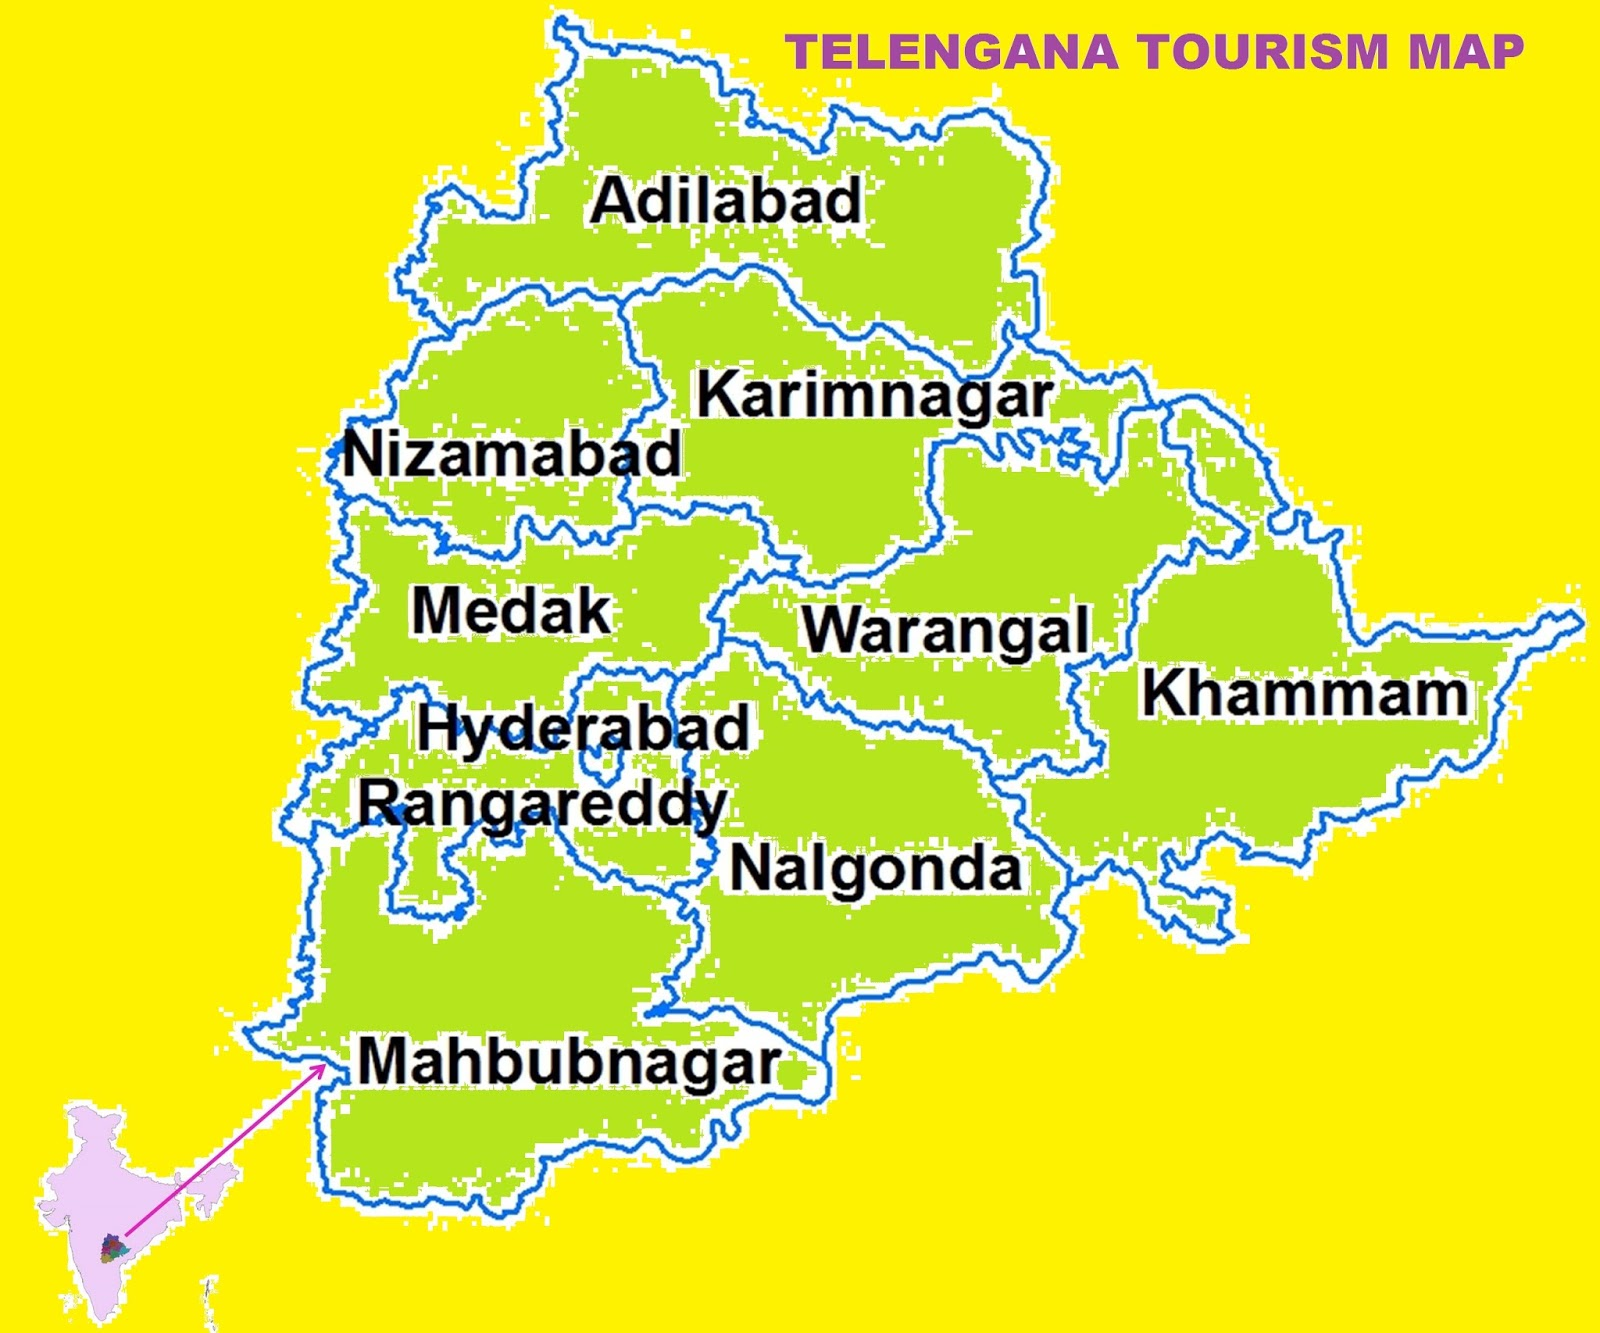 STUNNING TOURIST LOCATIONS IN TELENGANA – South India Map With Tourist Places